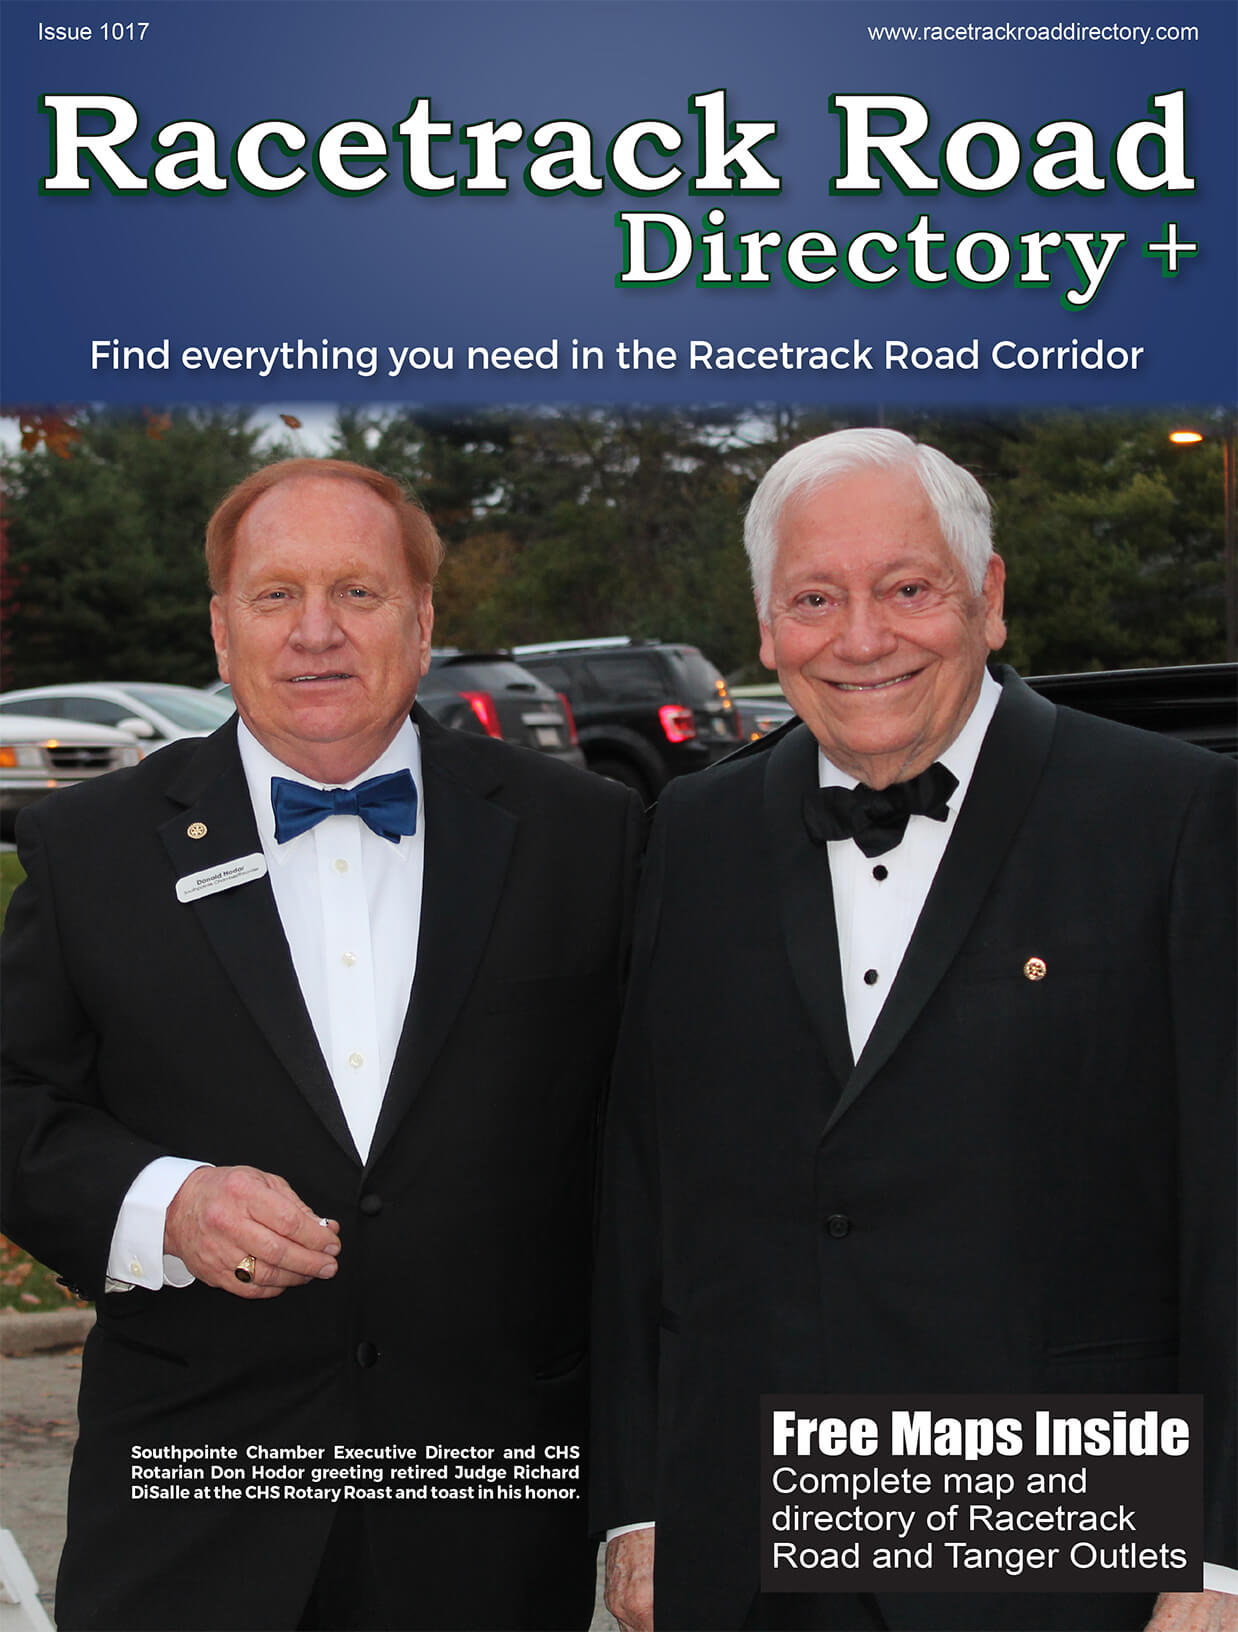 Racetrack Road Directory Fall 2017